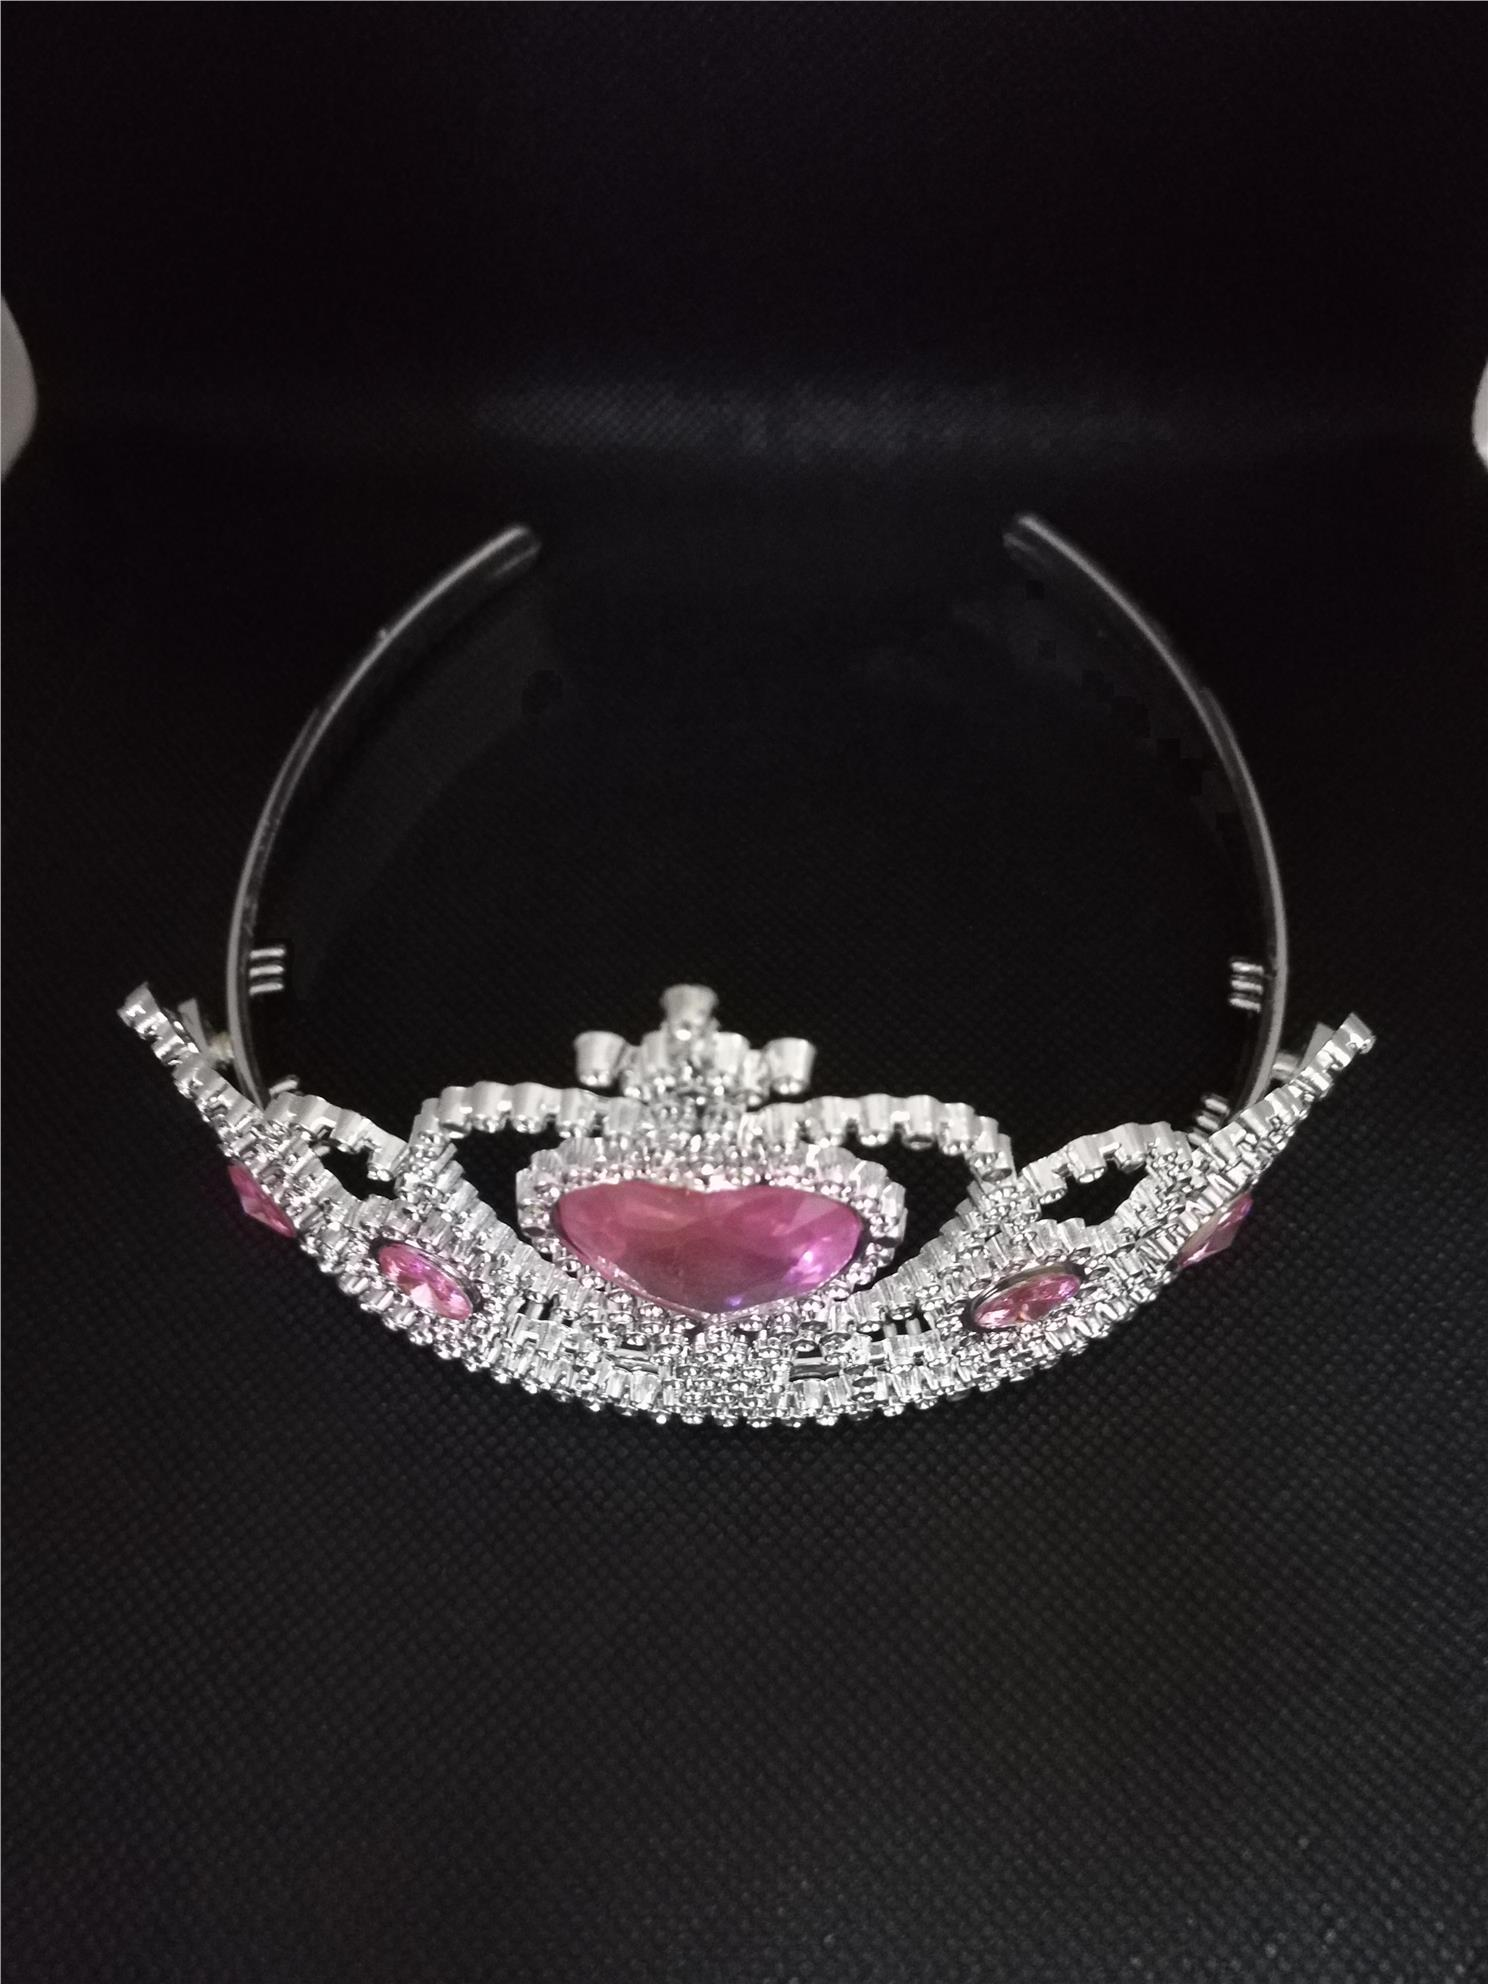 PRINCESS TIARA JEWELRY, TIARA CROWN FOR KIDS